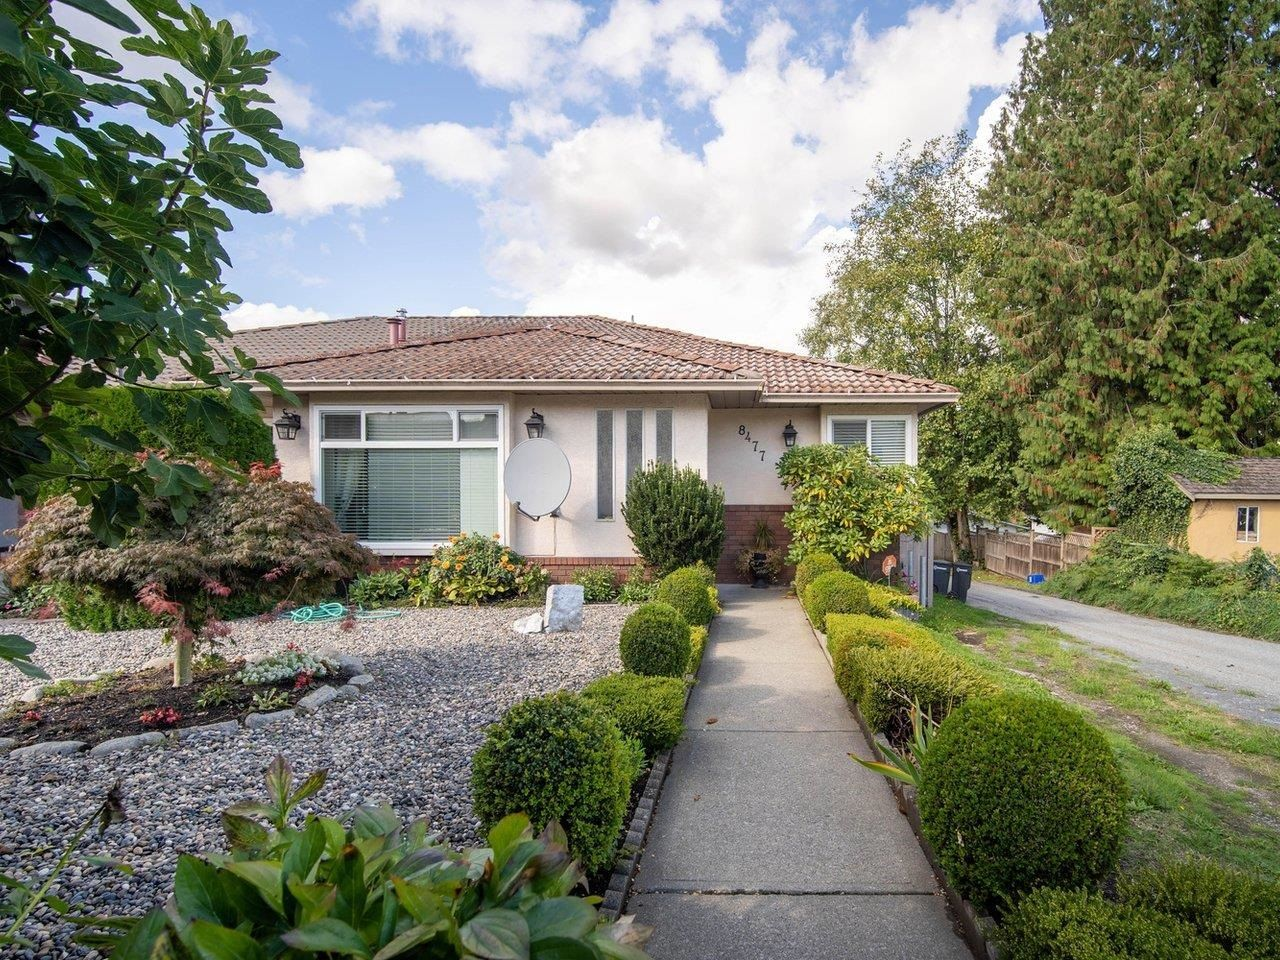 Main Photo: 8477 16TH Avenue in Burnaby: East Burnaby 1/2 Duplex for sale (Burnaby East)  : MLS®# R2623605